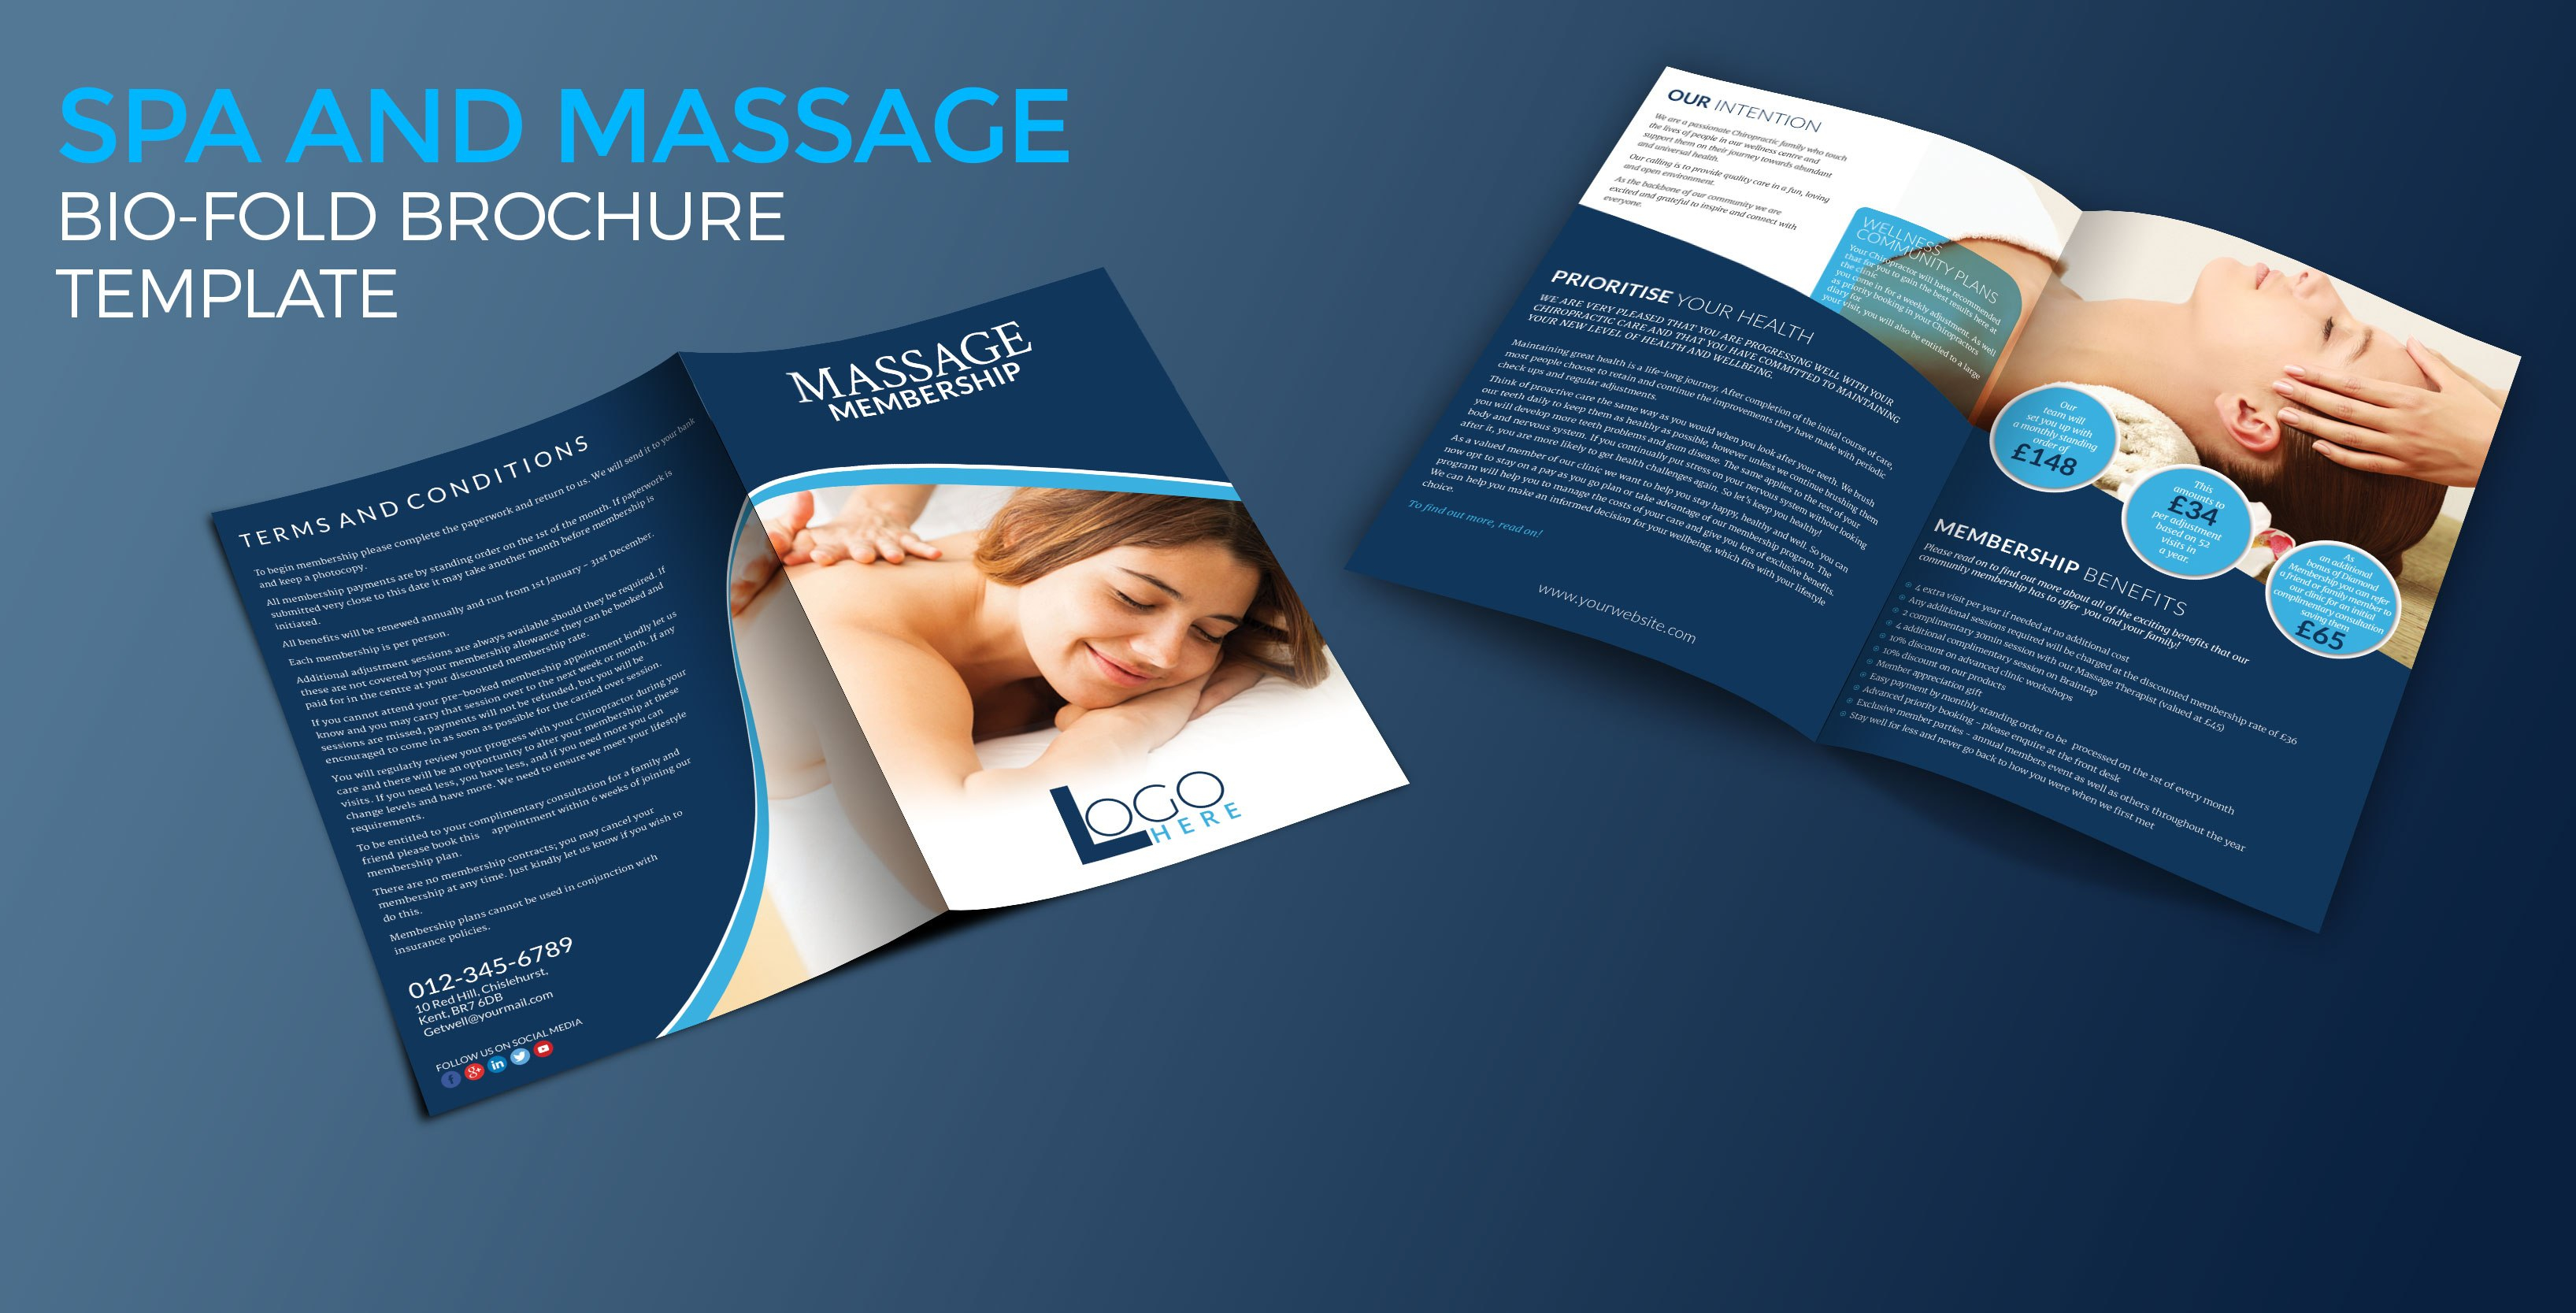 Spa And Massage Biofold Brochure Template  Graphic Reserve With Regard To Membership Brochure Template